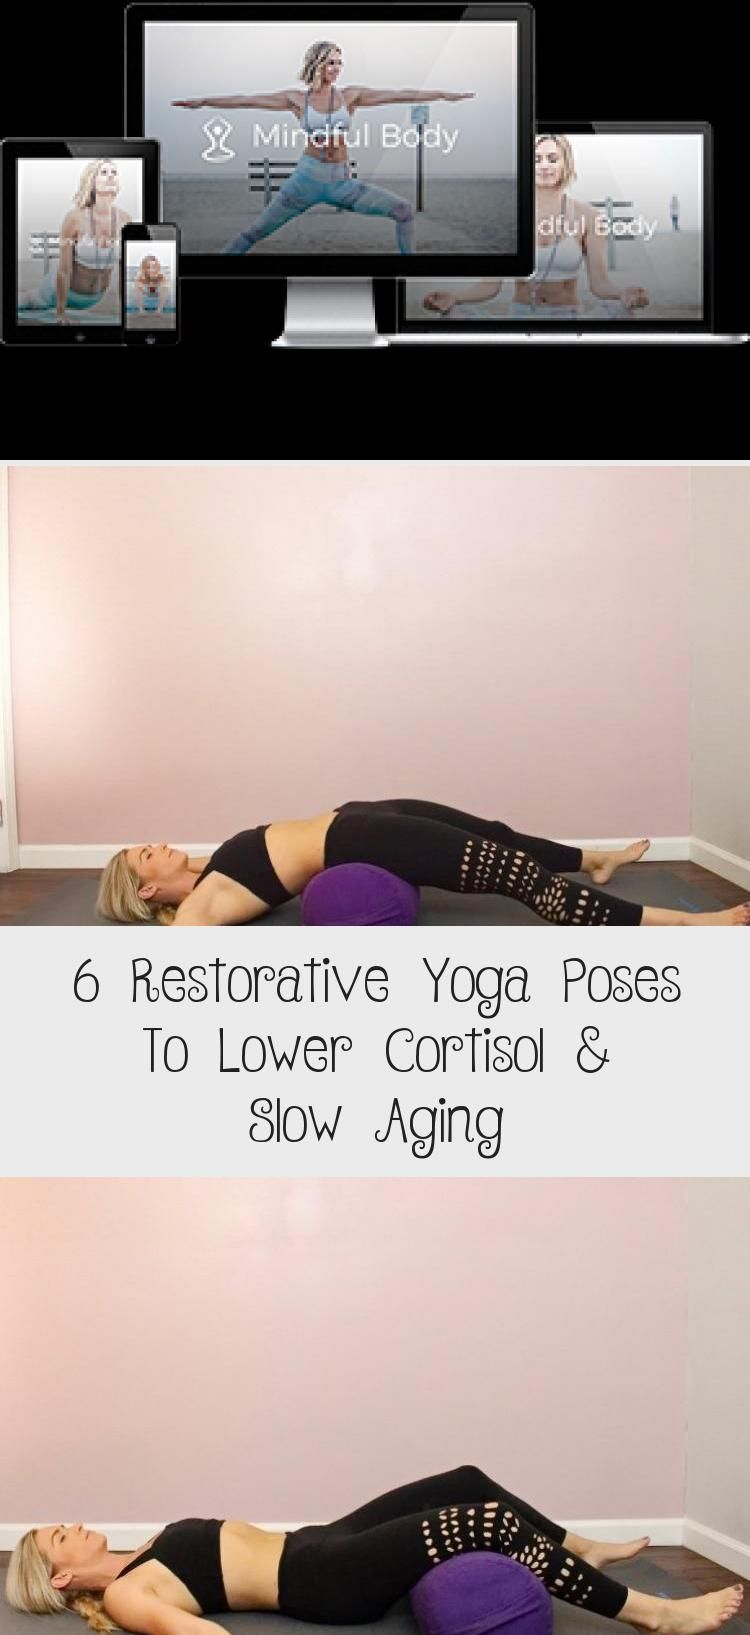 6 Restorative Yoga Poses To Lower Cortisol Slow Aging Gentle Easy Yogaposesbeforebed Beginneryogapose Restorative Yoga Poses Restorative Yoga Yoga Poses